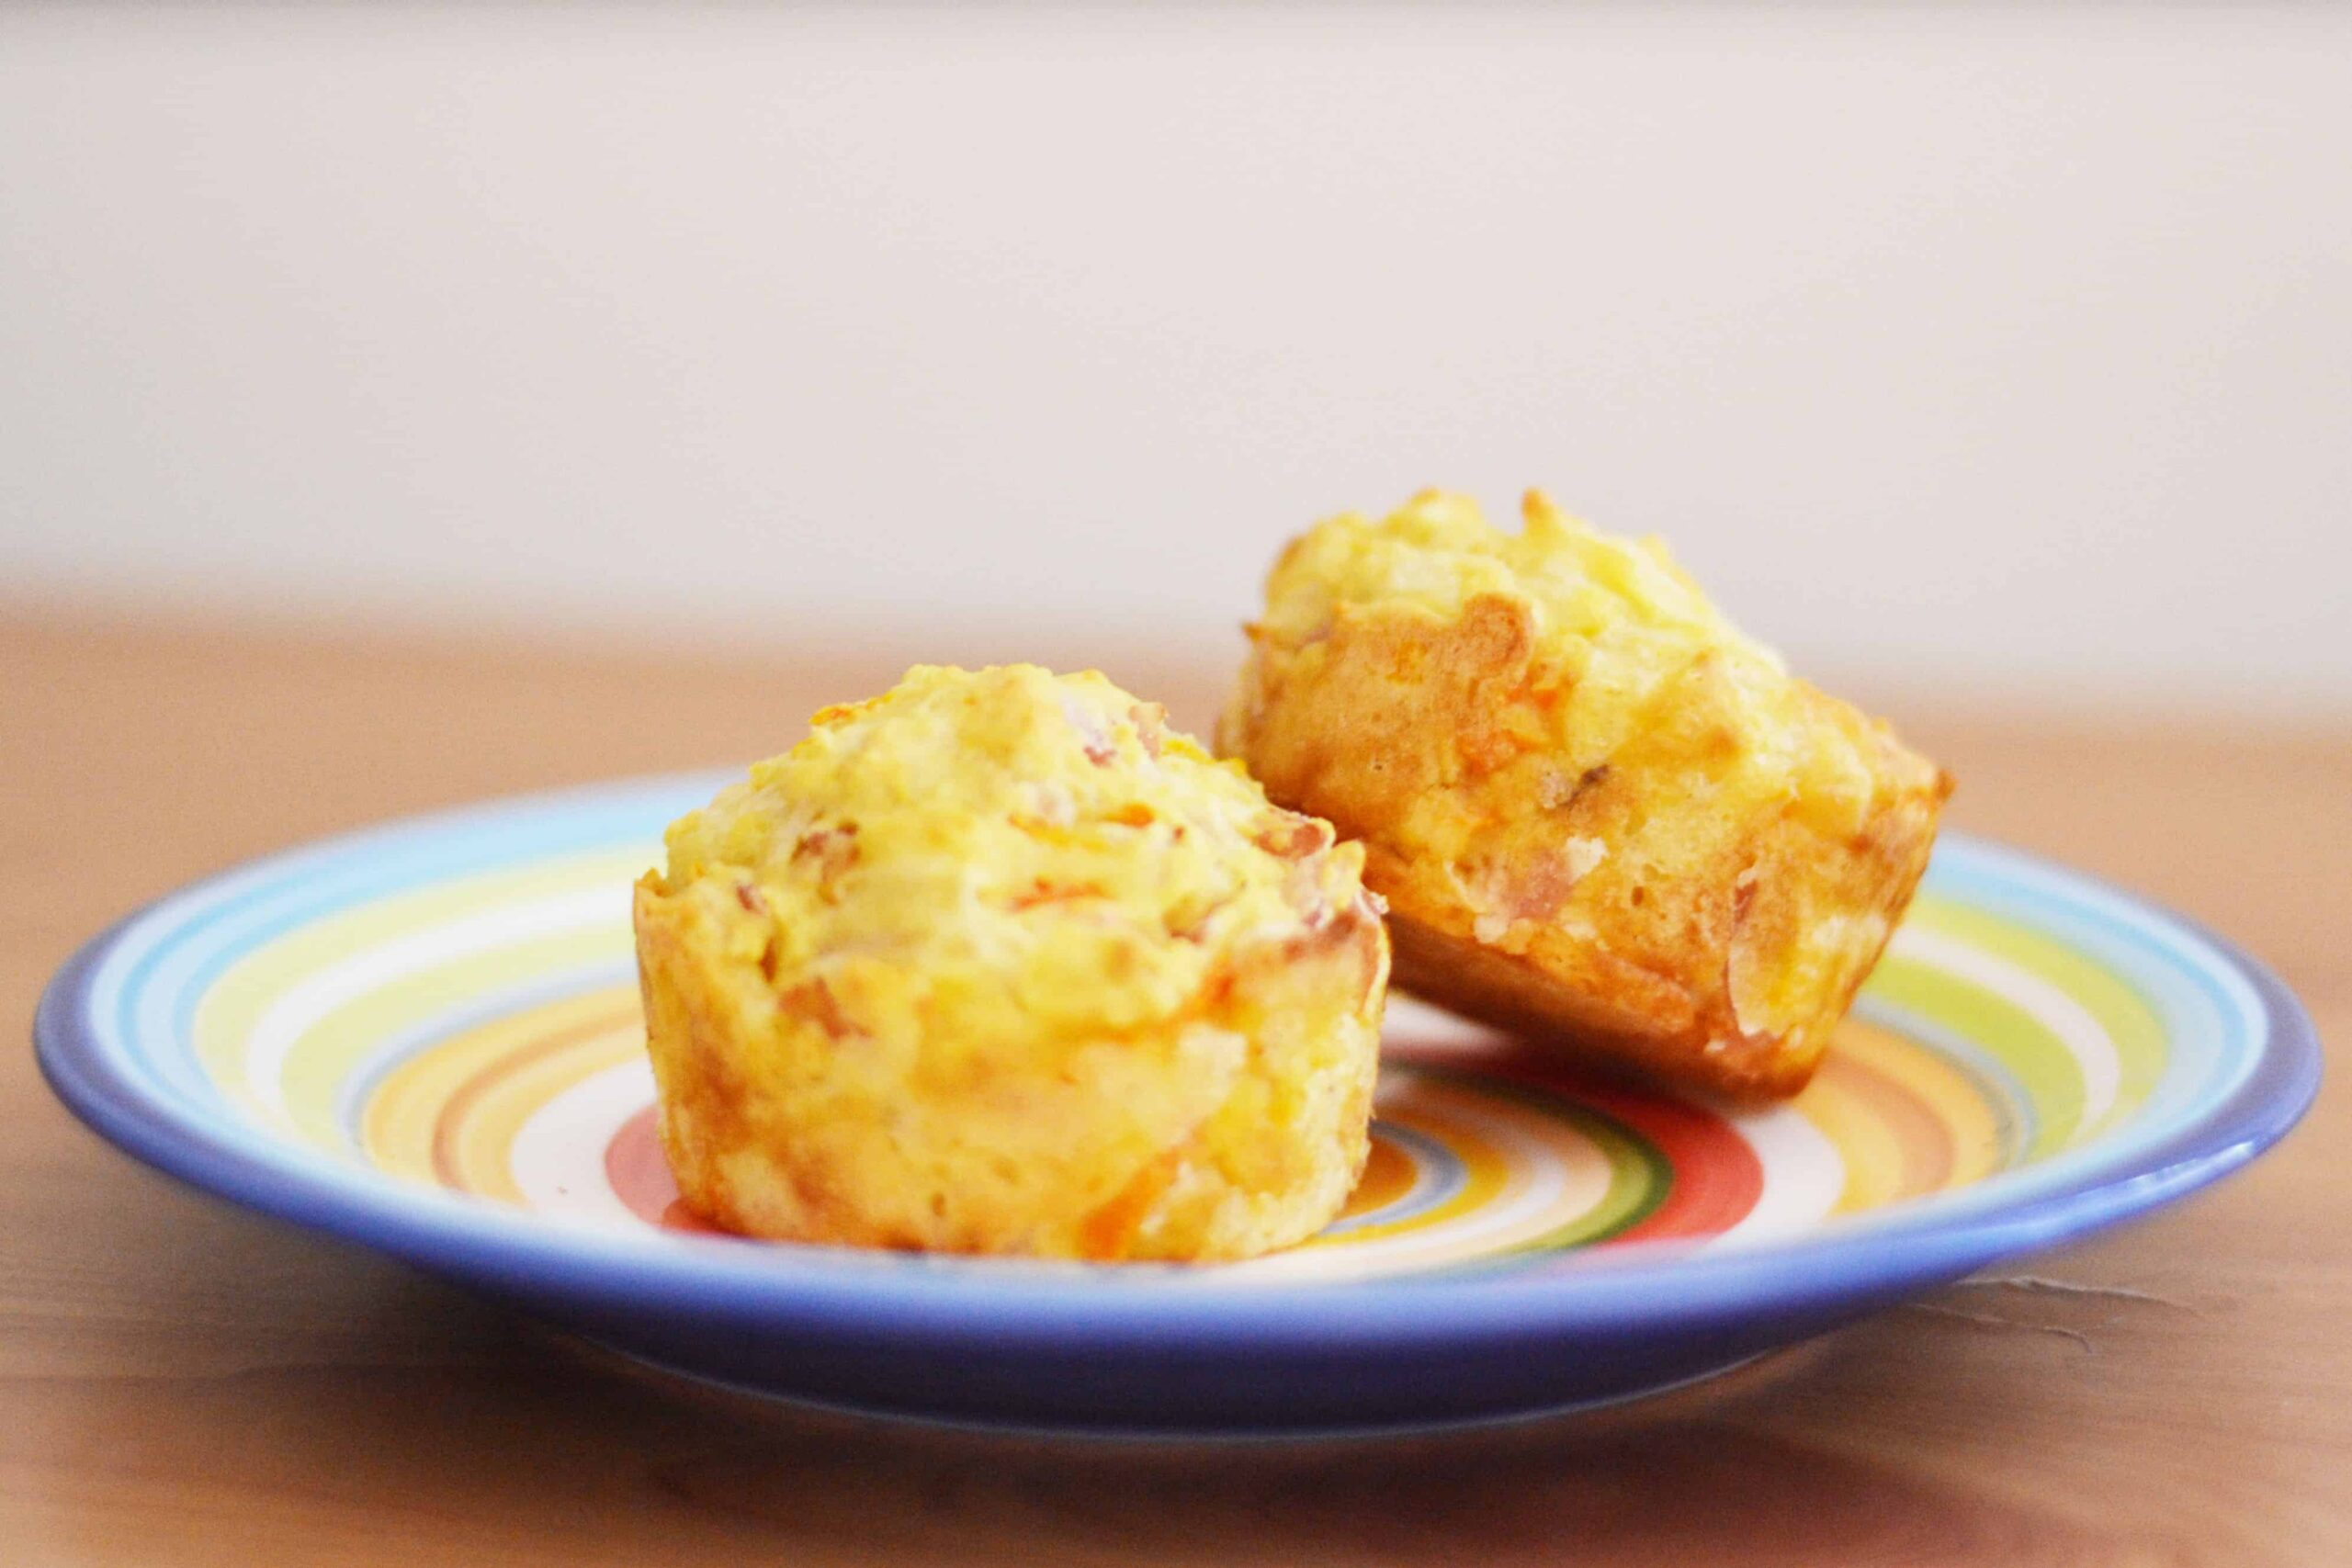 Savoury Ham Carrot & Cheese Muffins Recipe